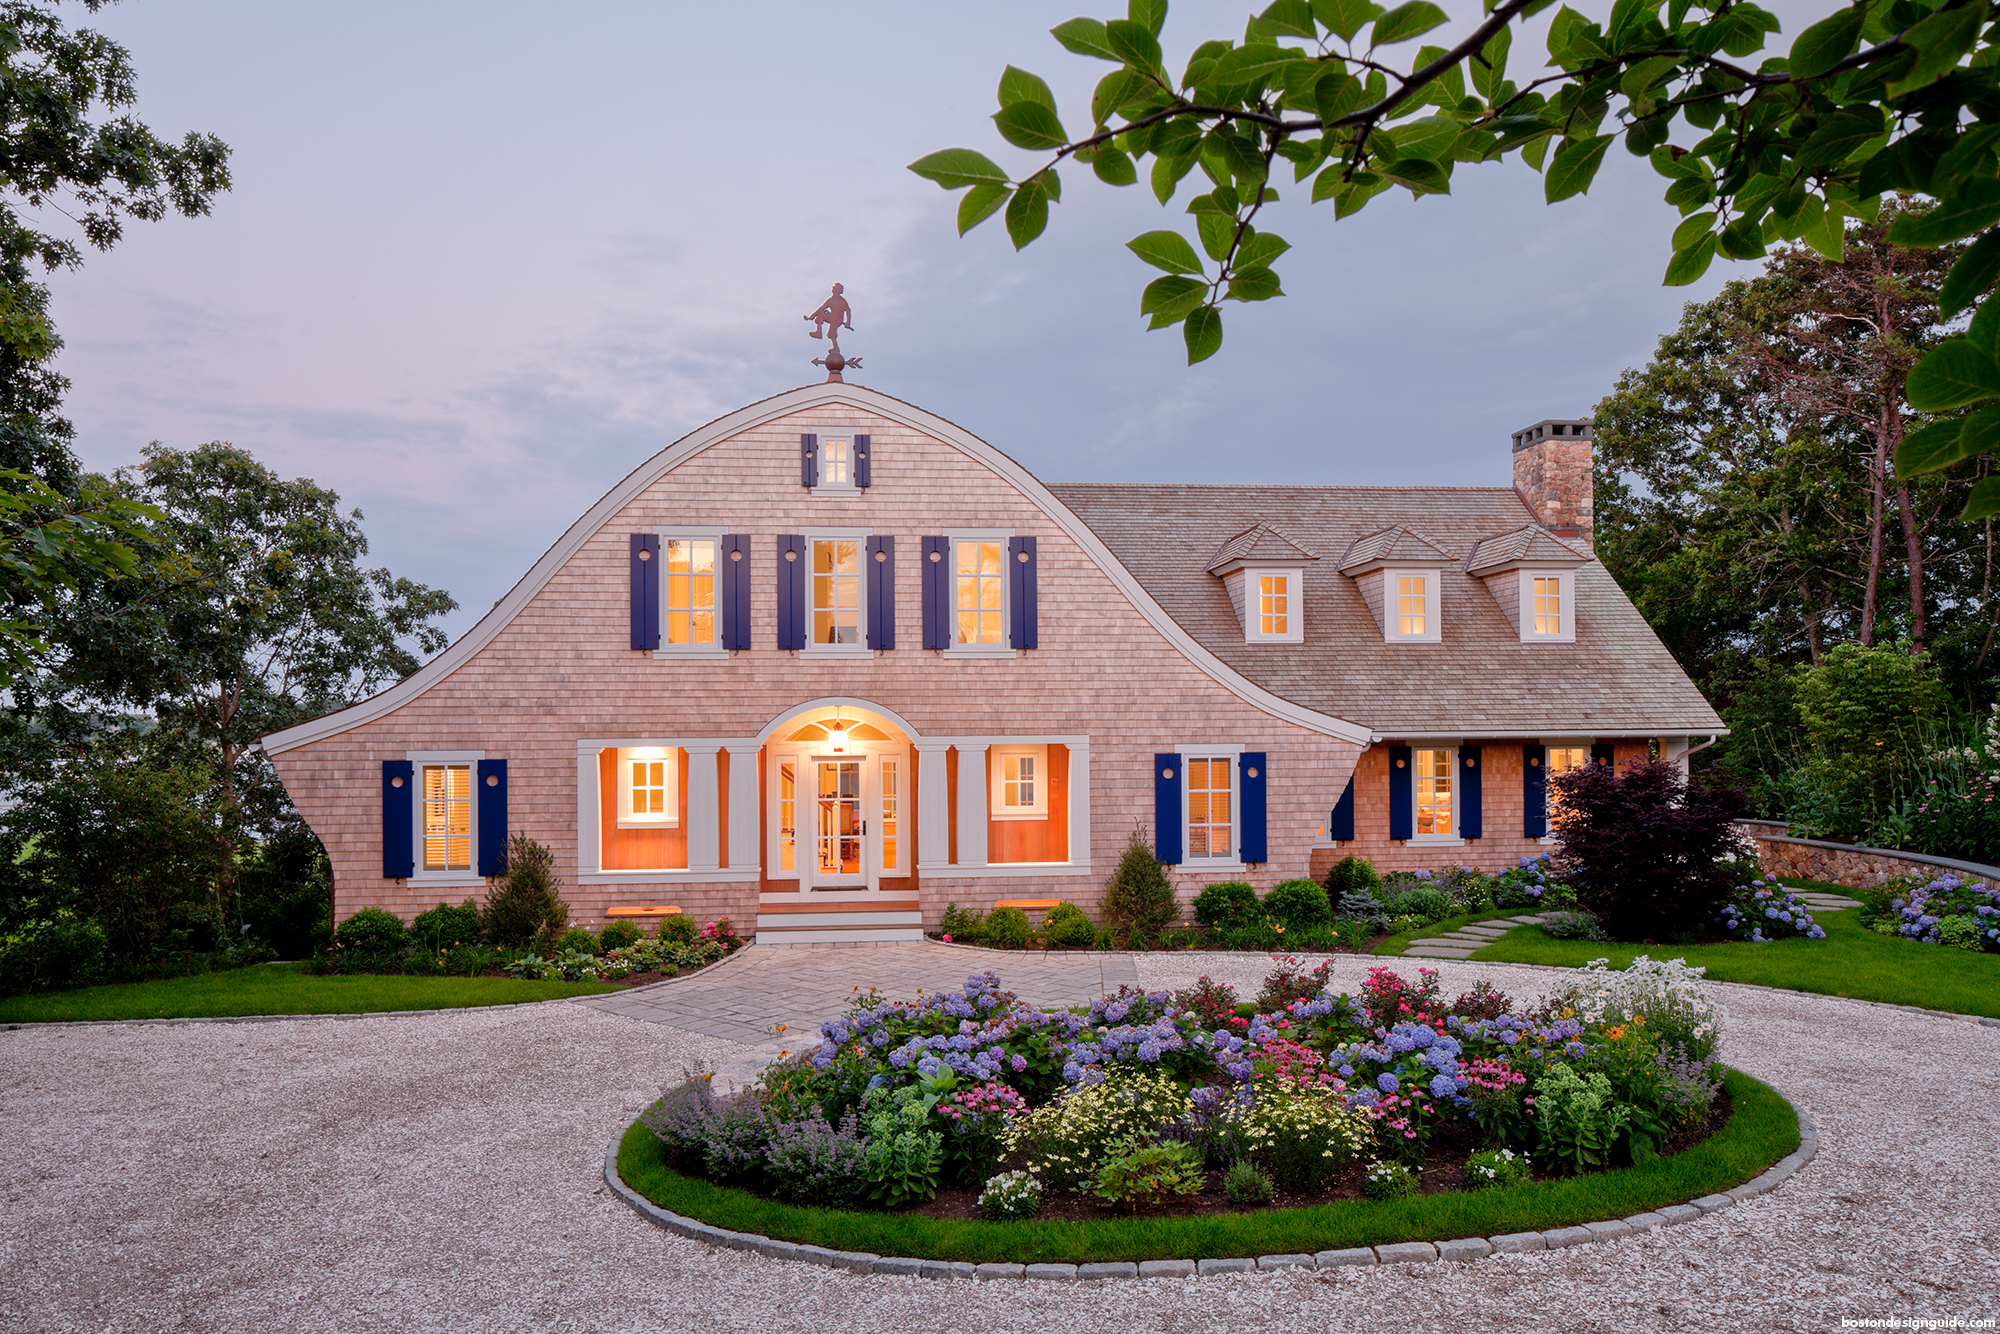 A Cape Cod Shingle Style Home Turns On The Charm